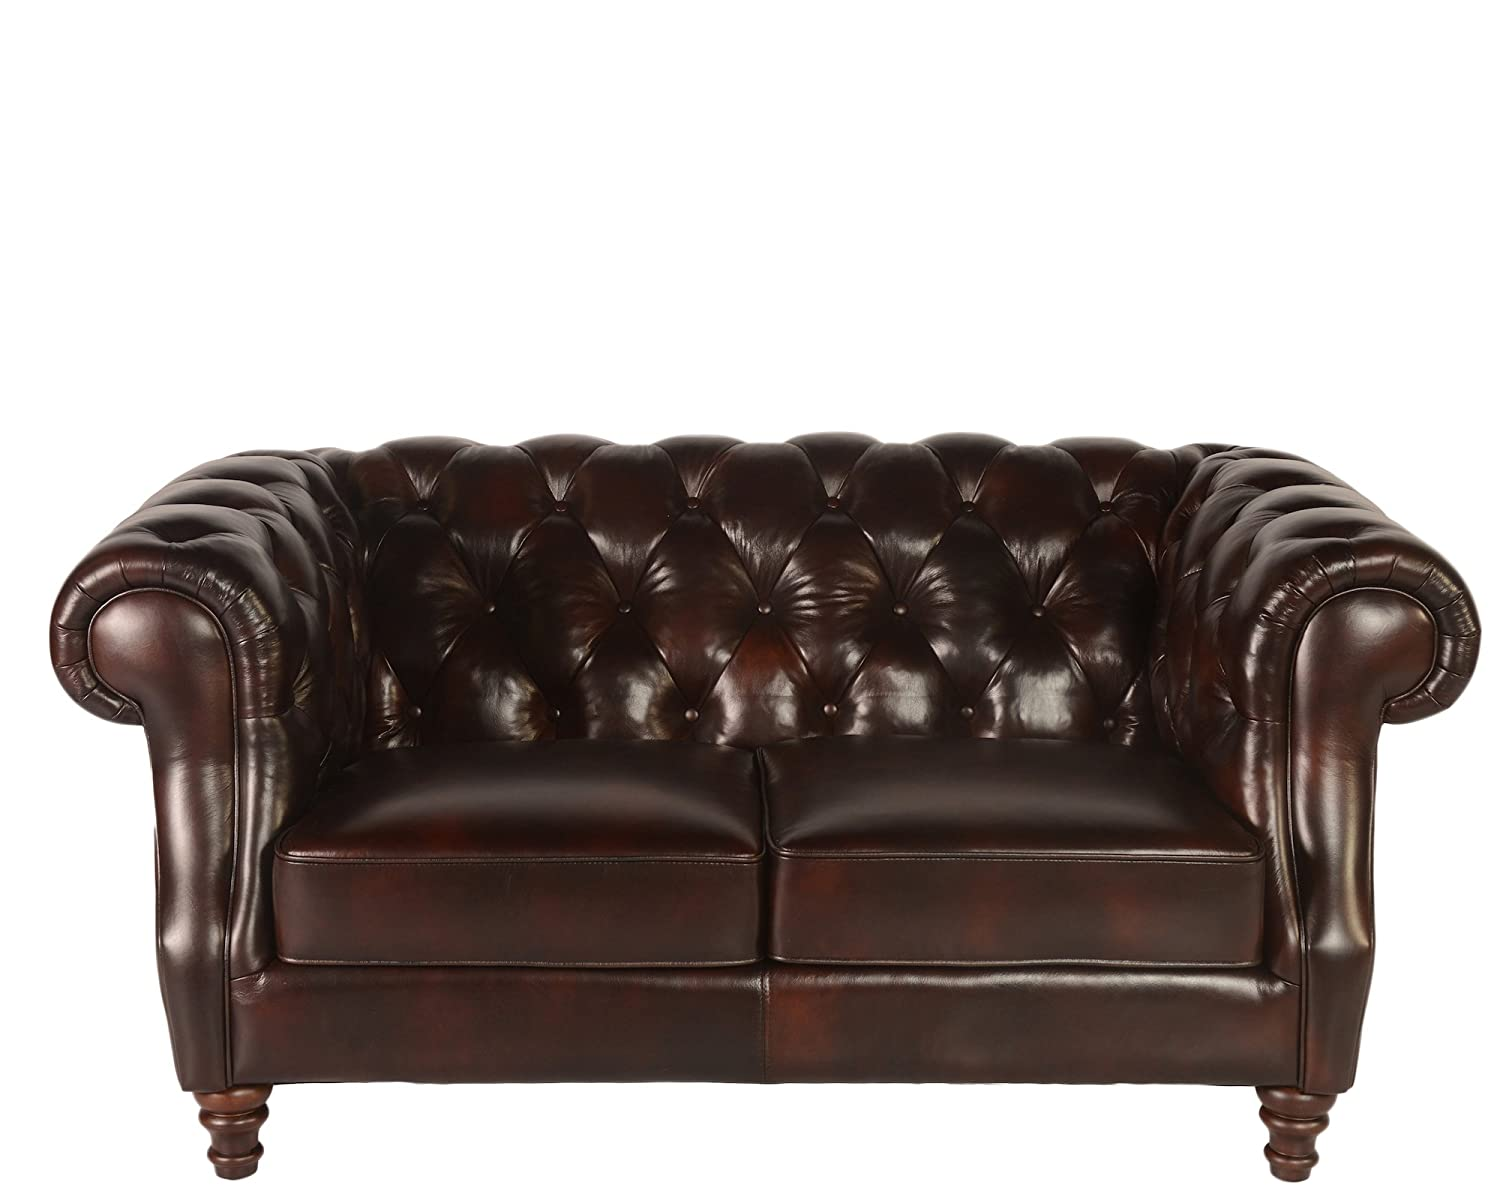 Lazzaro 1011 Chesterfield Loveseat in Brown Vintage Leather